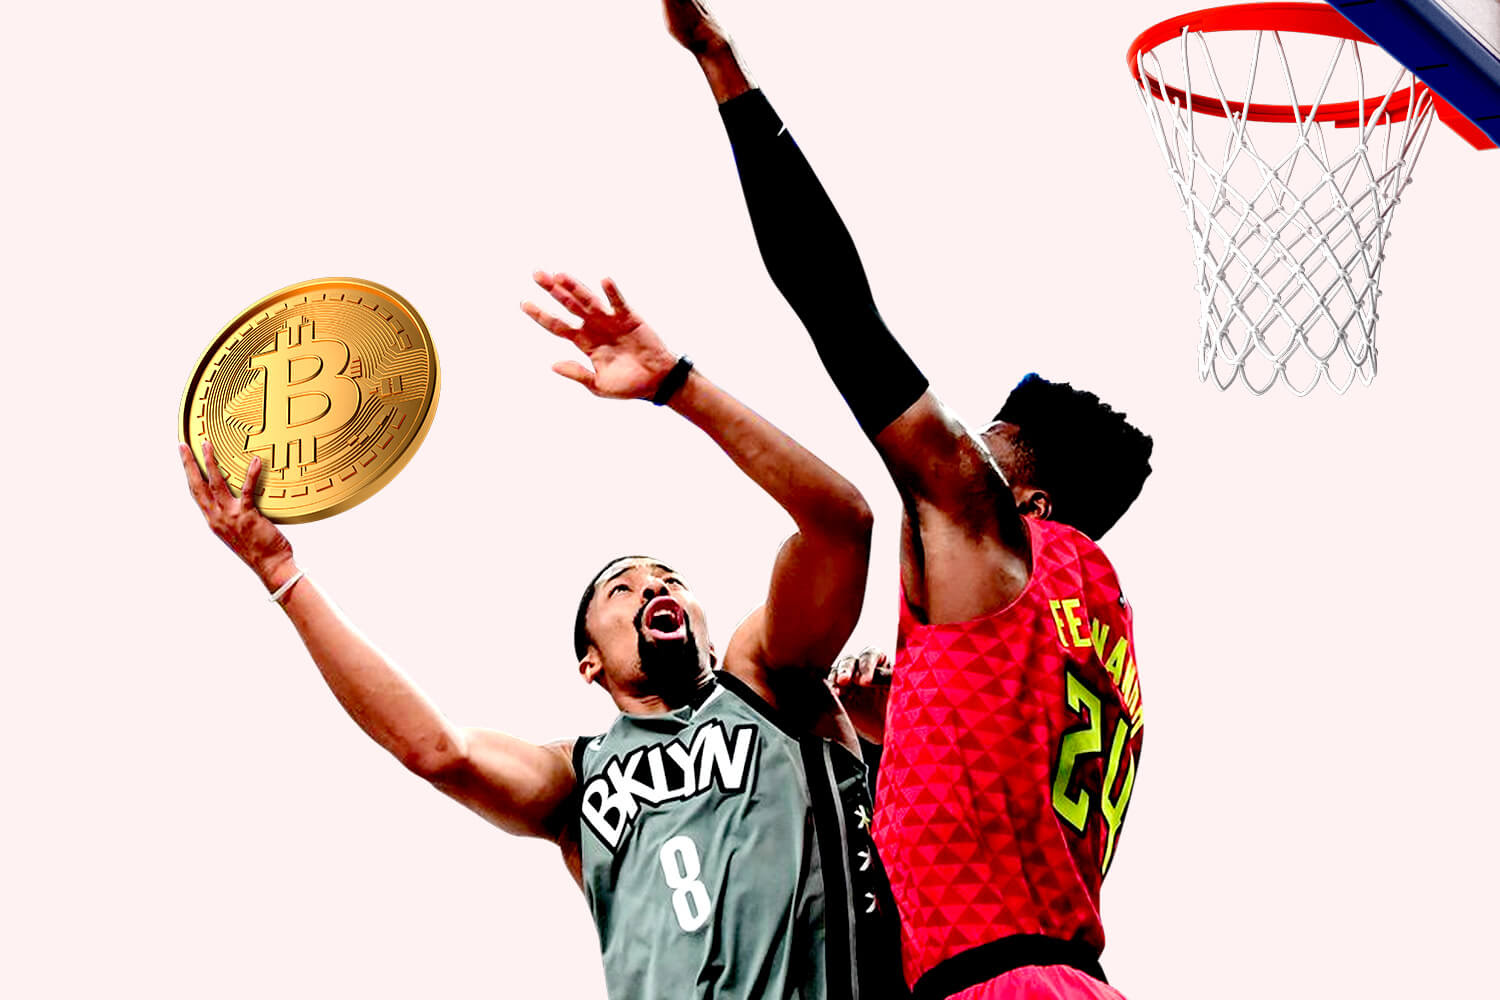 An illustration of Spencer Dinwiddie playing basketball with a bitcoin ball